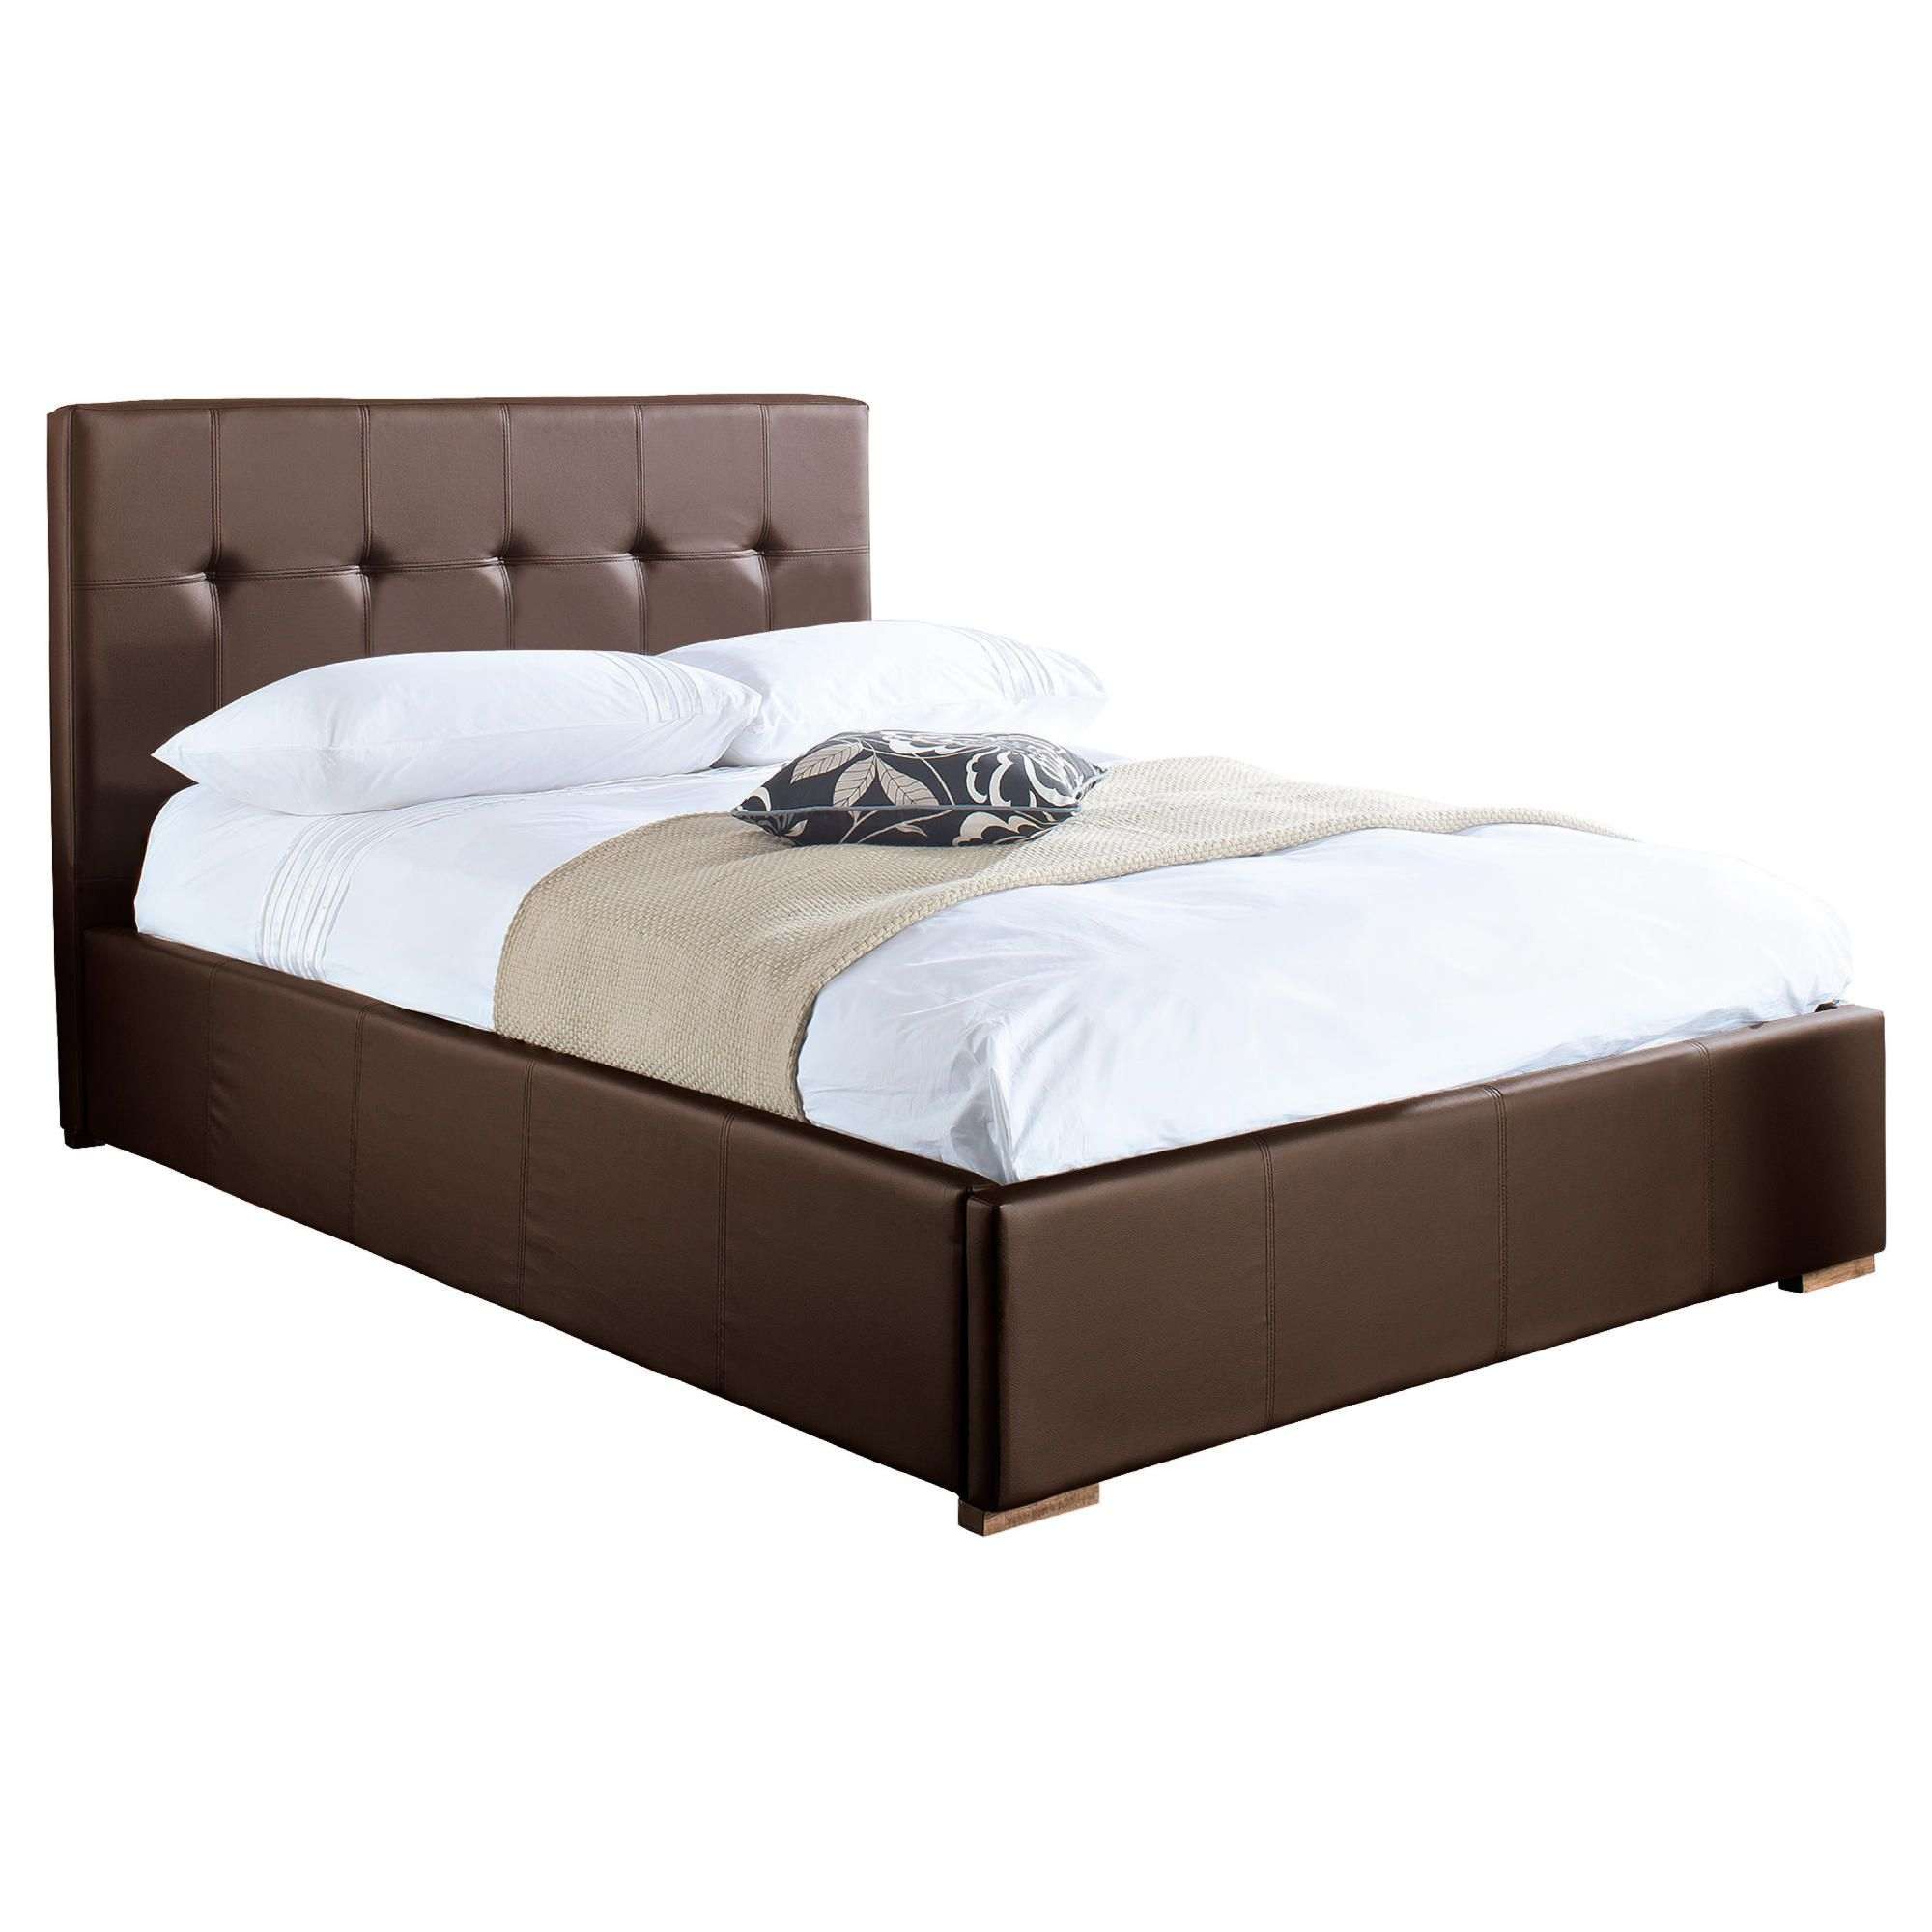 Orleans King Storage Bed, Brown Faux Leather at Tescos Direct